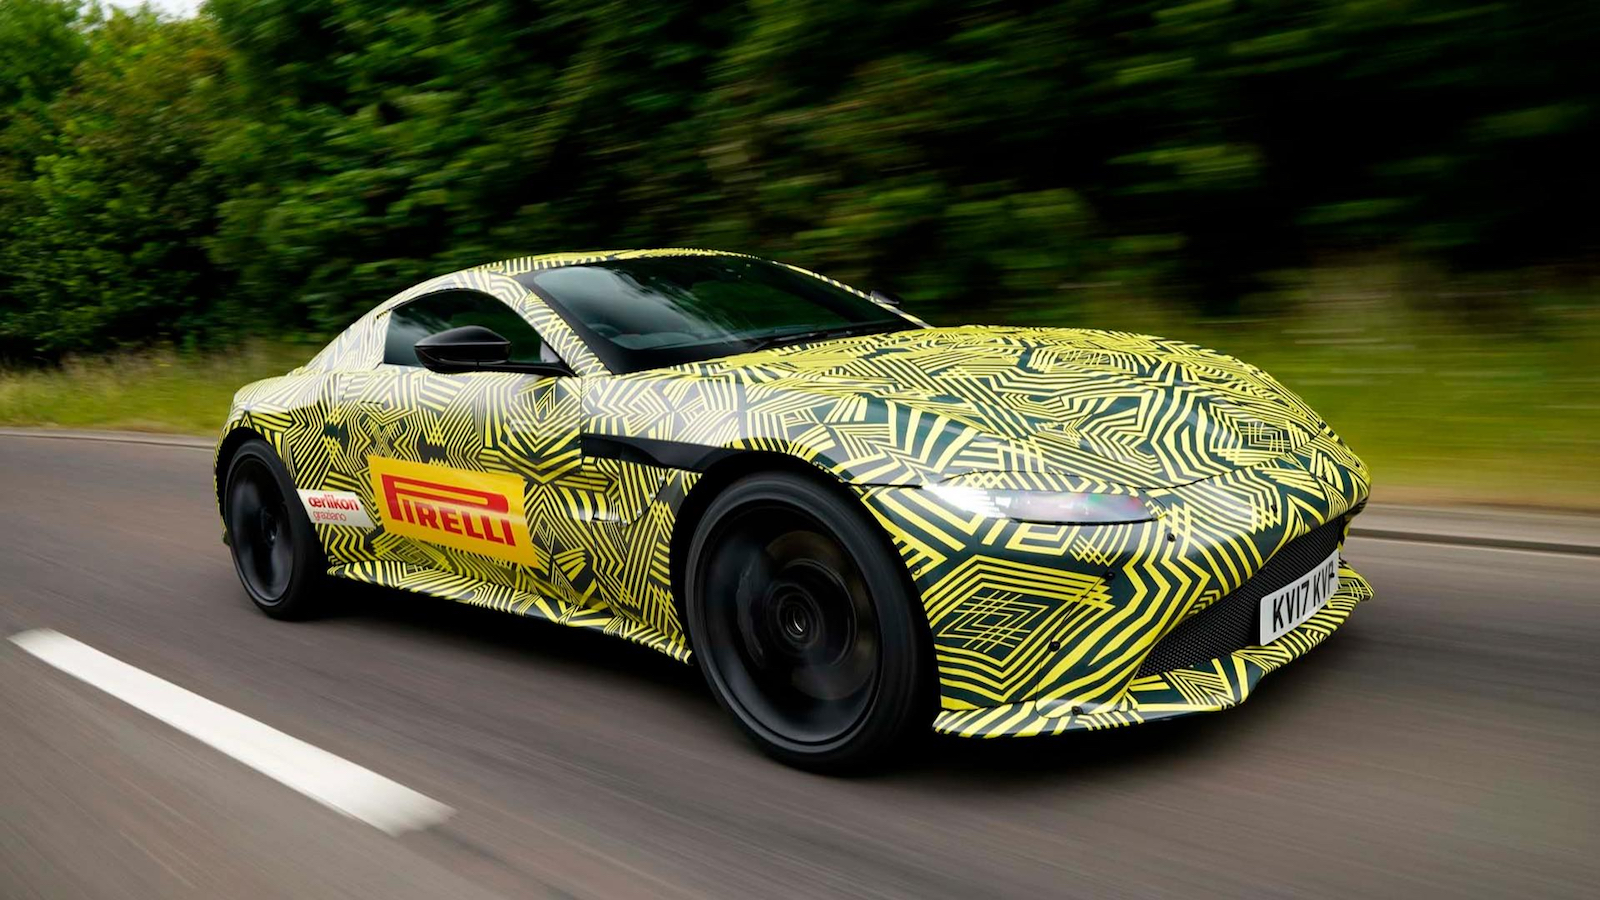 New Aston Martin V Vantage Debuting This Year Motoraty - Aston martin lineup